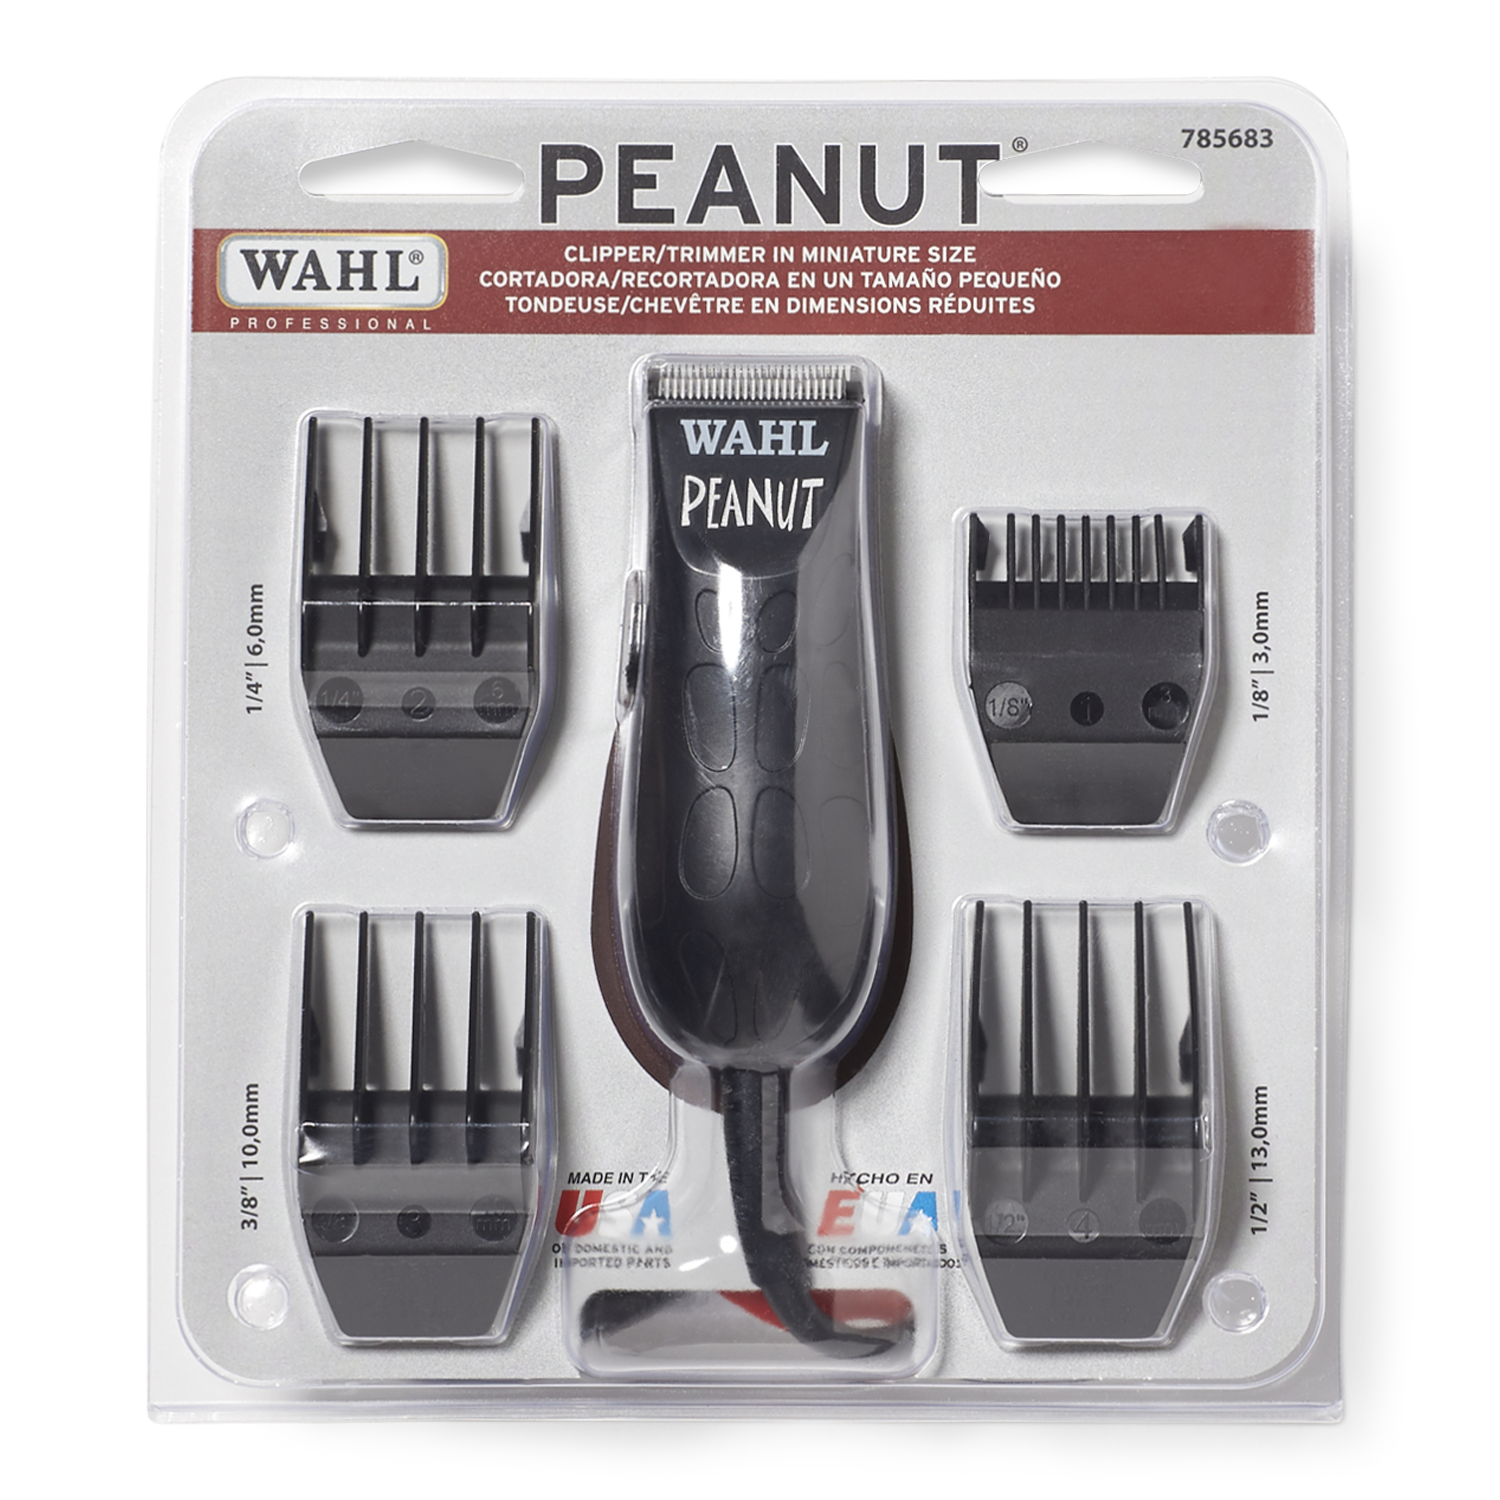 Peanut wahl clipper/trimmers